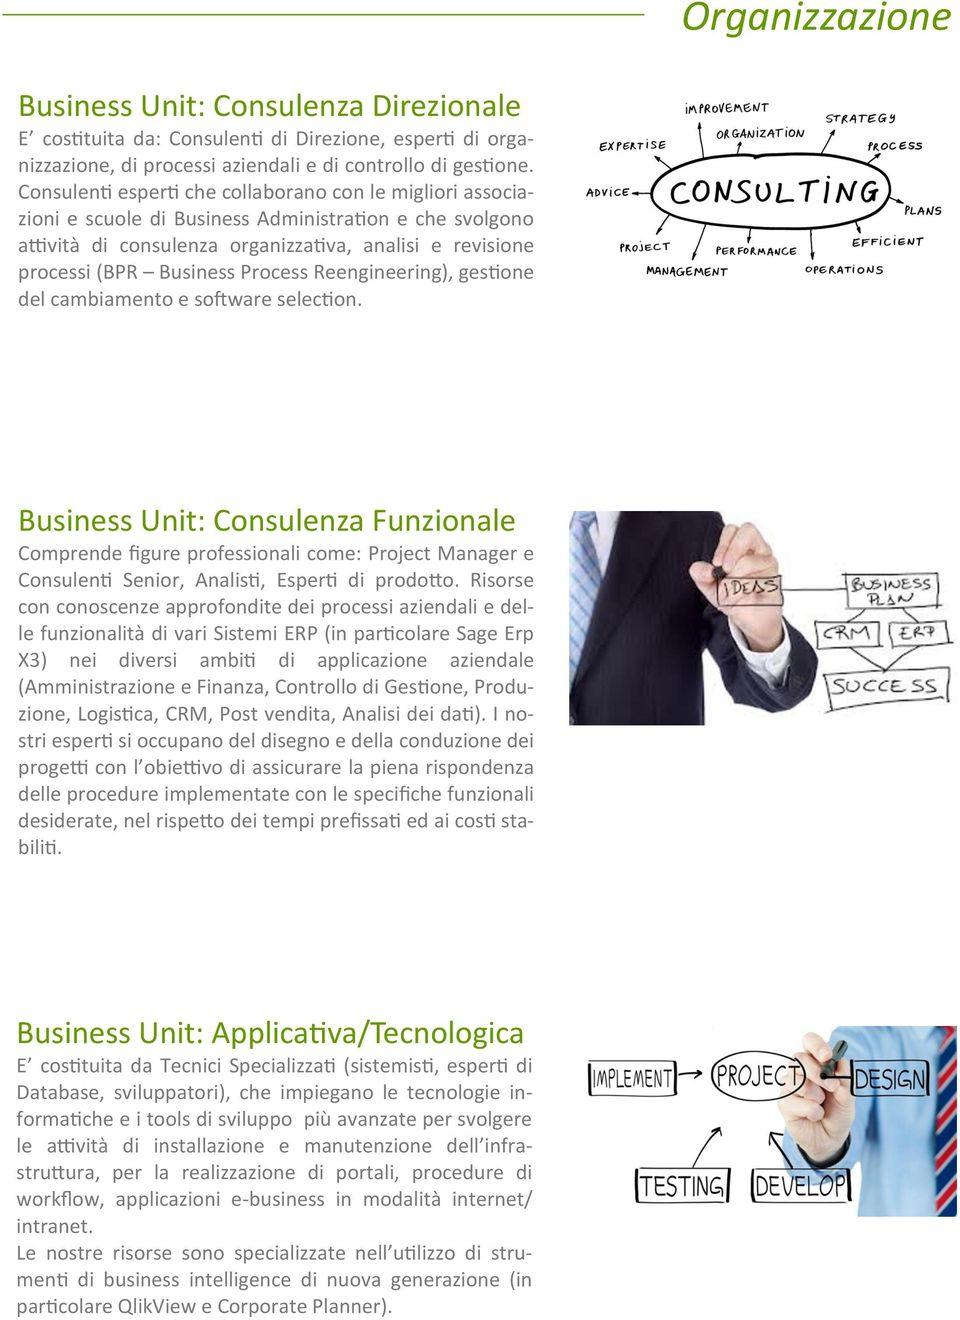 Process Reengineering), gestione del cambiamento e software selection.